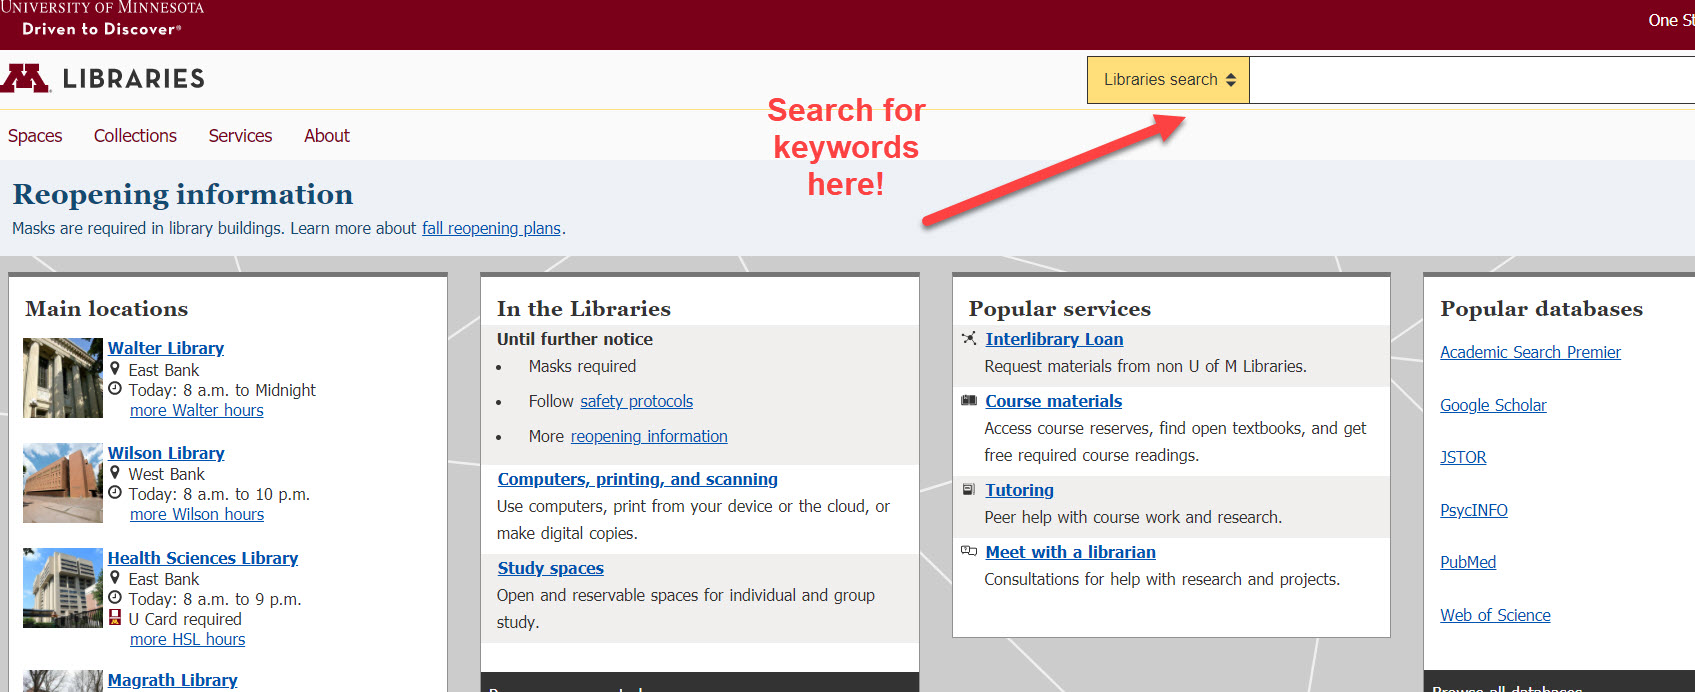 """An image of the search box on the University Libraries homepage with a red arrow pointing to it and text that reads """"Search keywords here!"""""""